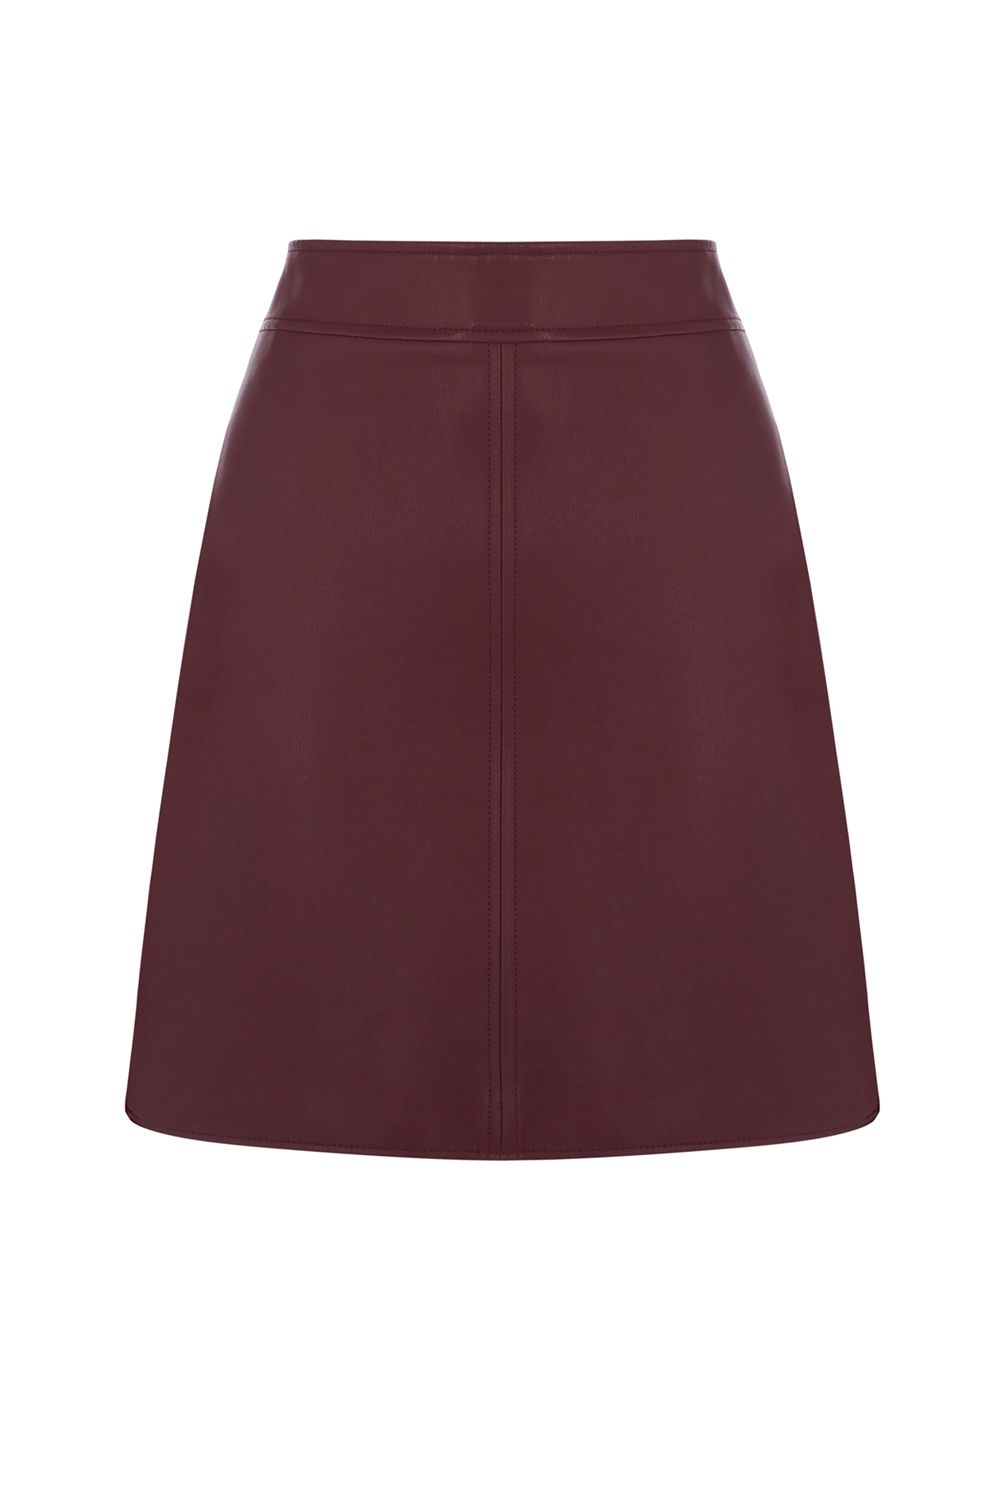 Warehouse Faux Leather Clean Skirt, Dark Red